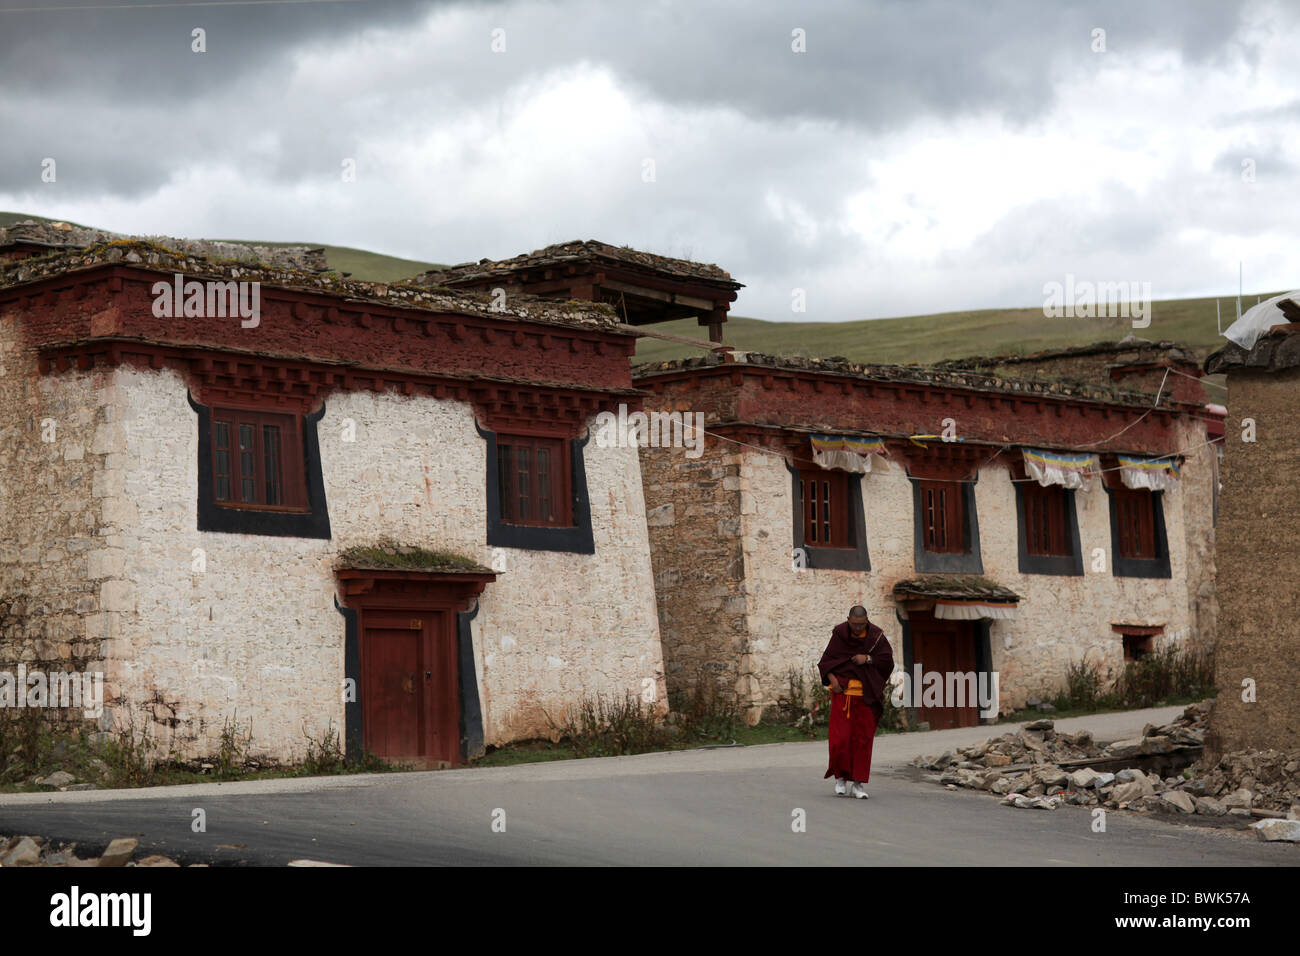 A monk in the village around Litang, Sichuan province, southwest China - Stock Image